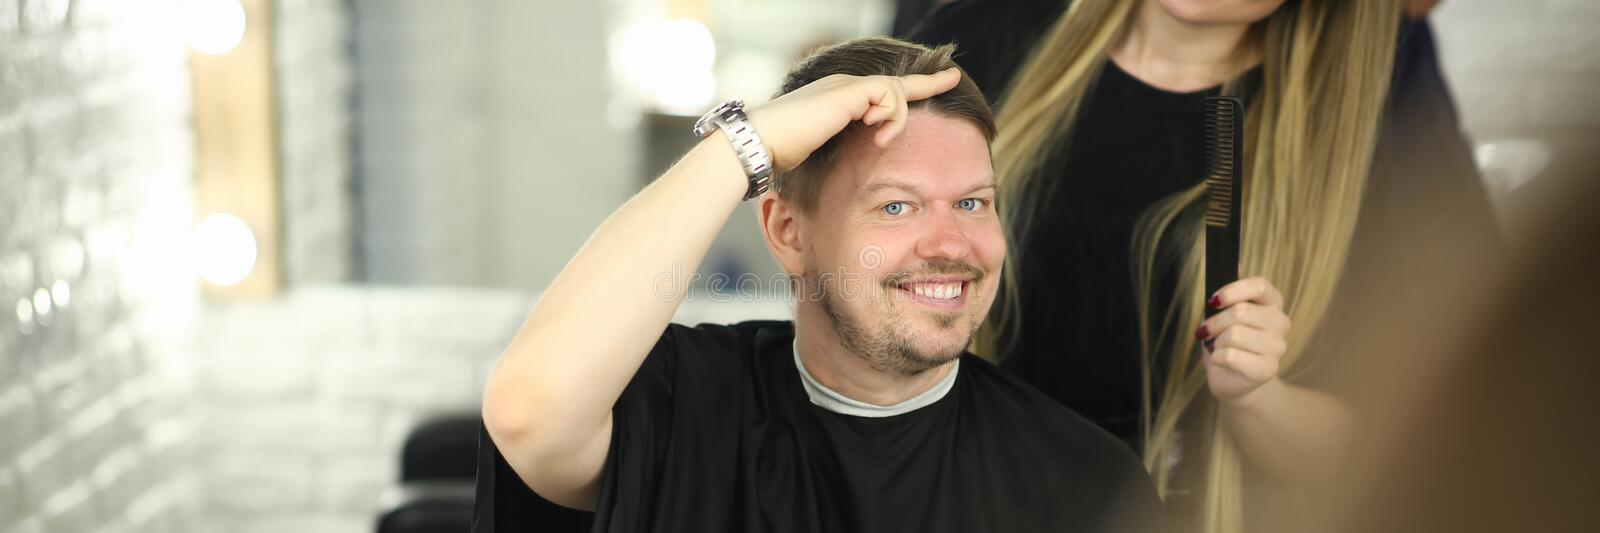 Man Client Showing Haircut Style in Beauty Salon royalty free stock images